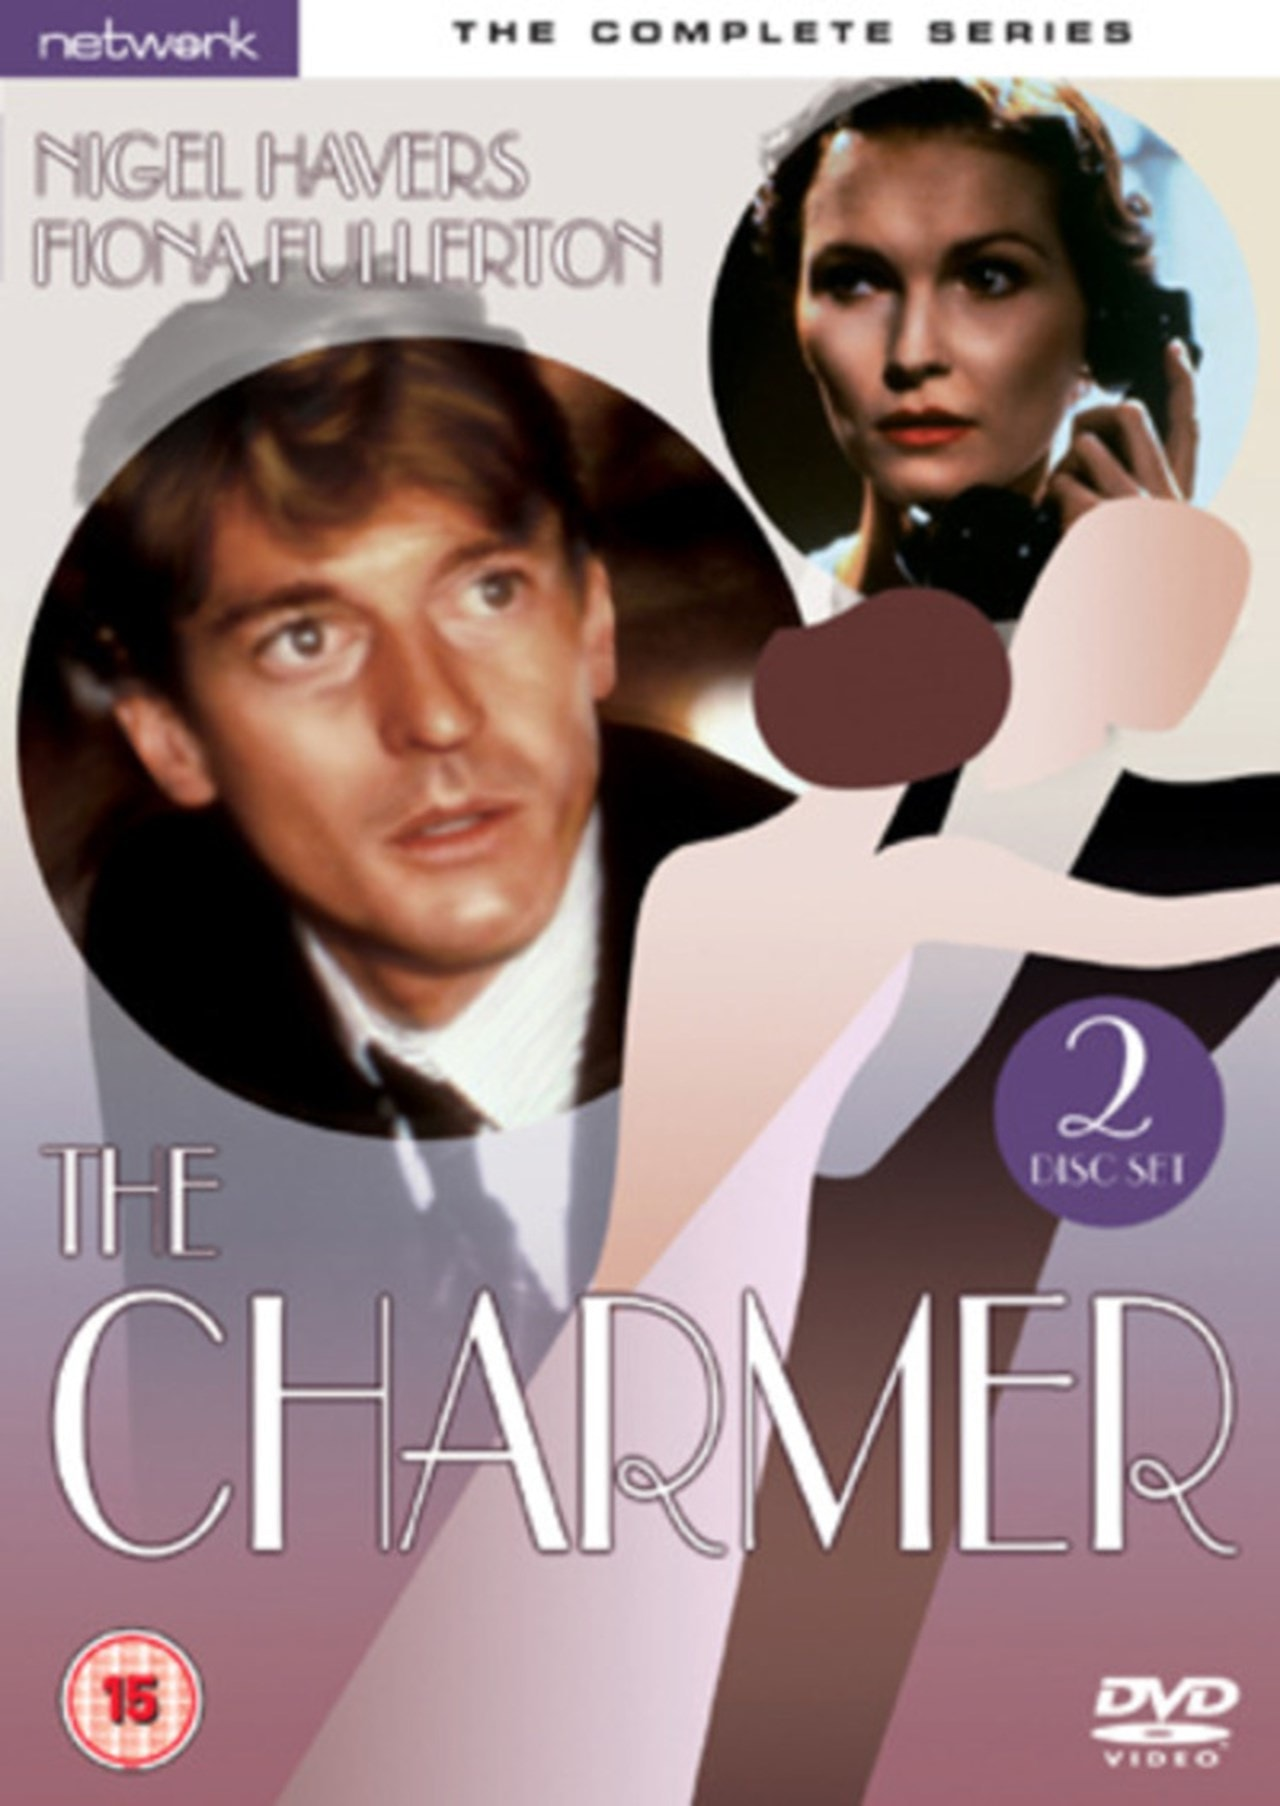 The Charmer: The Complete Series - 1